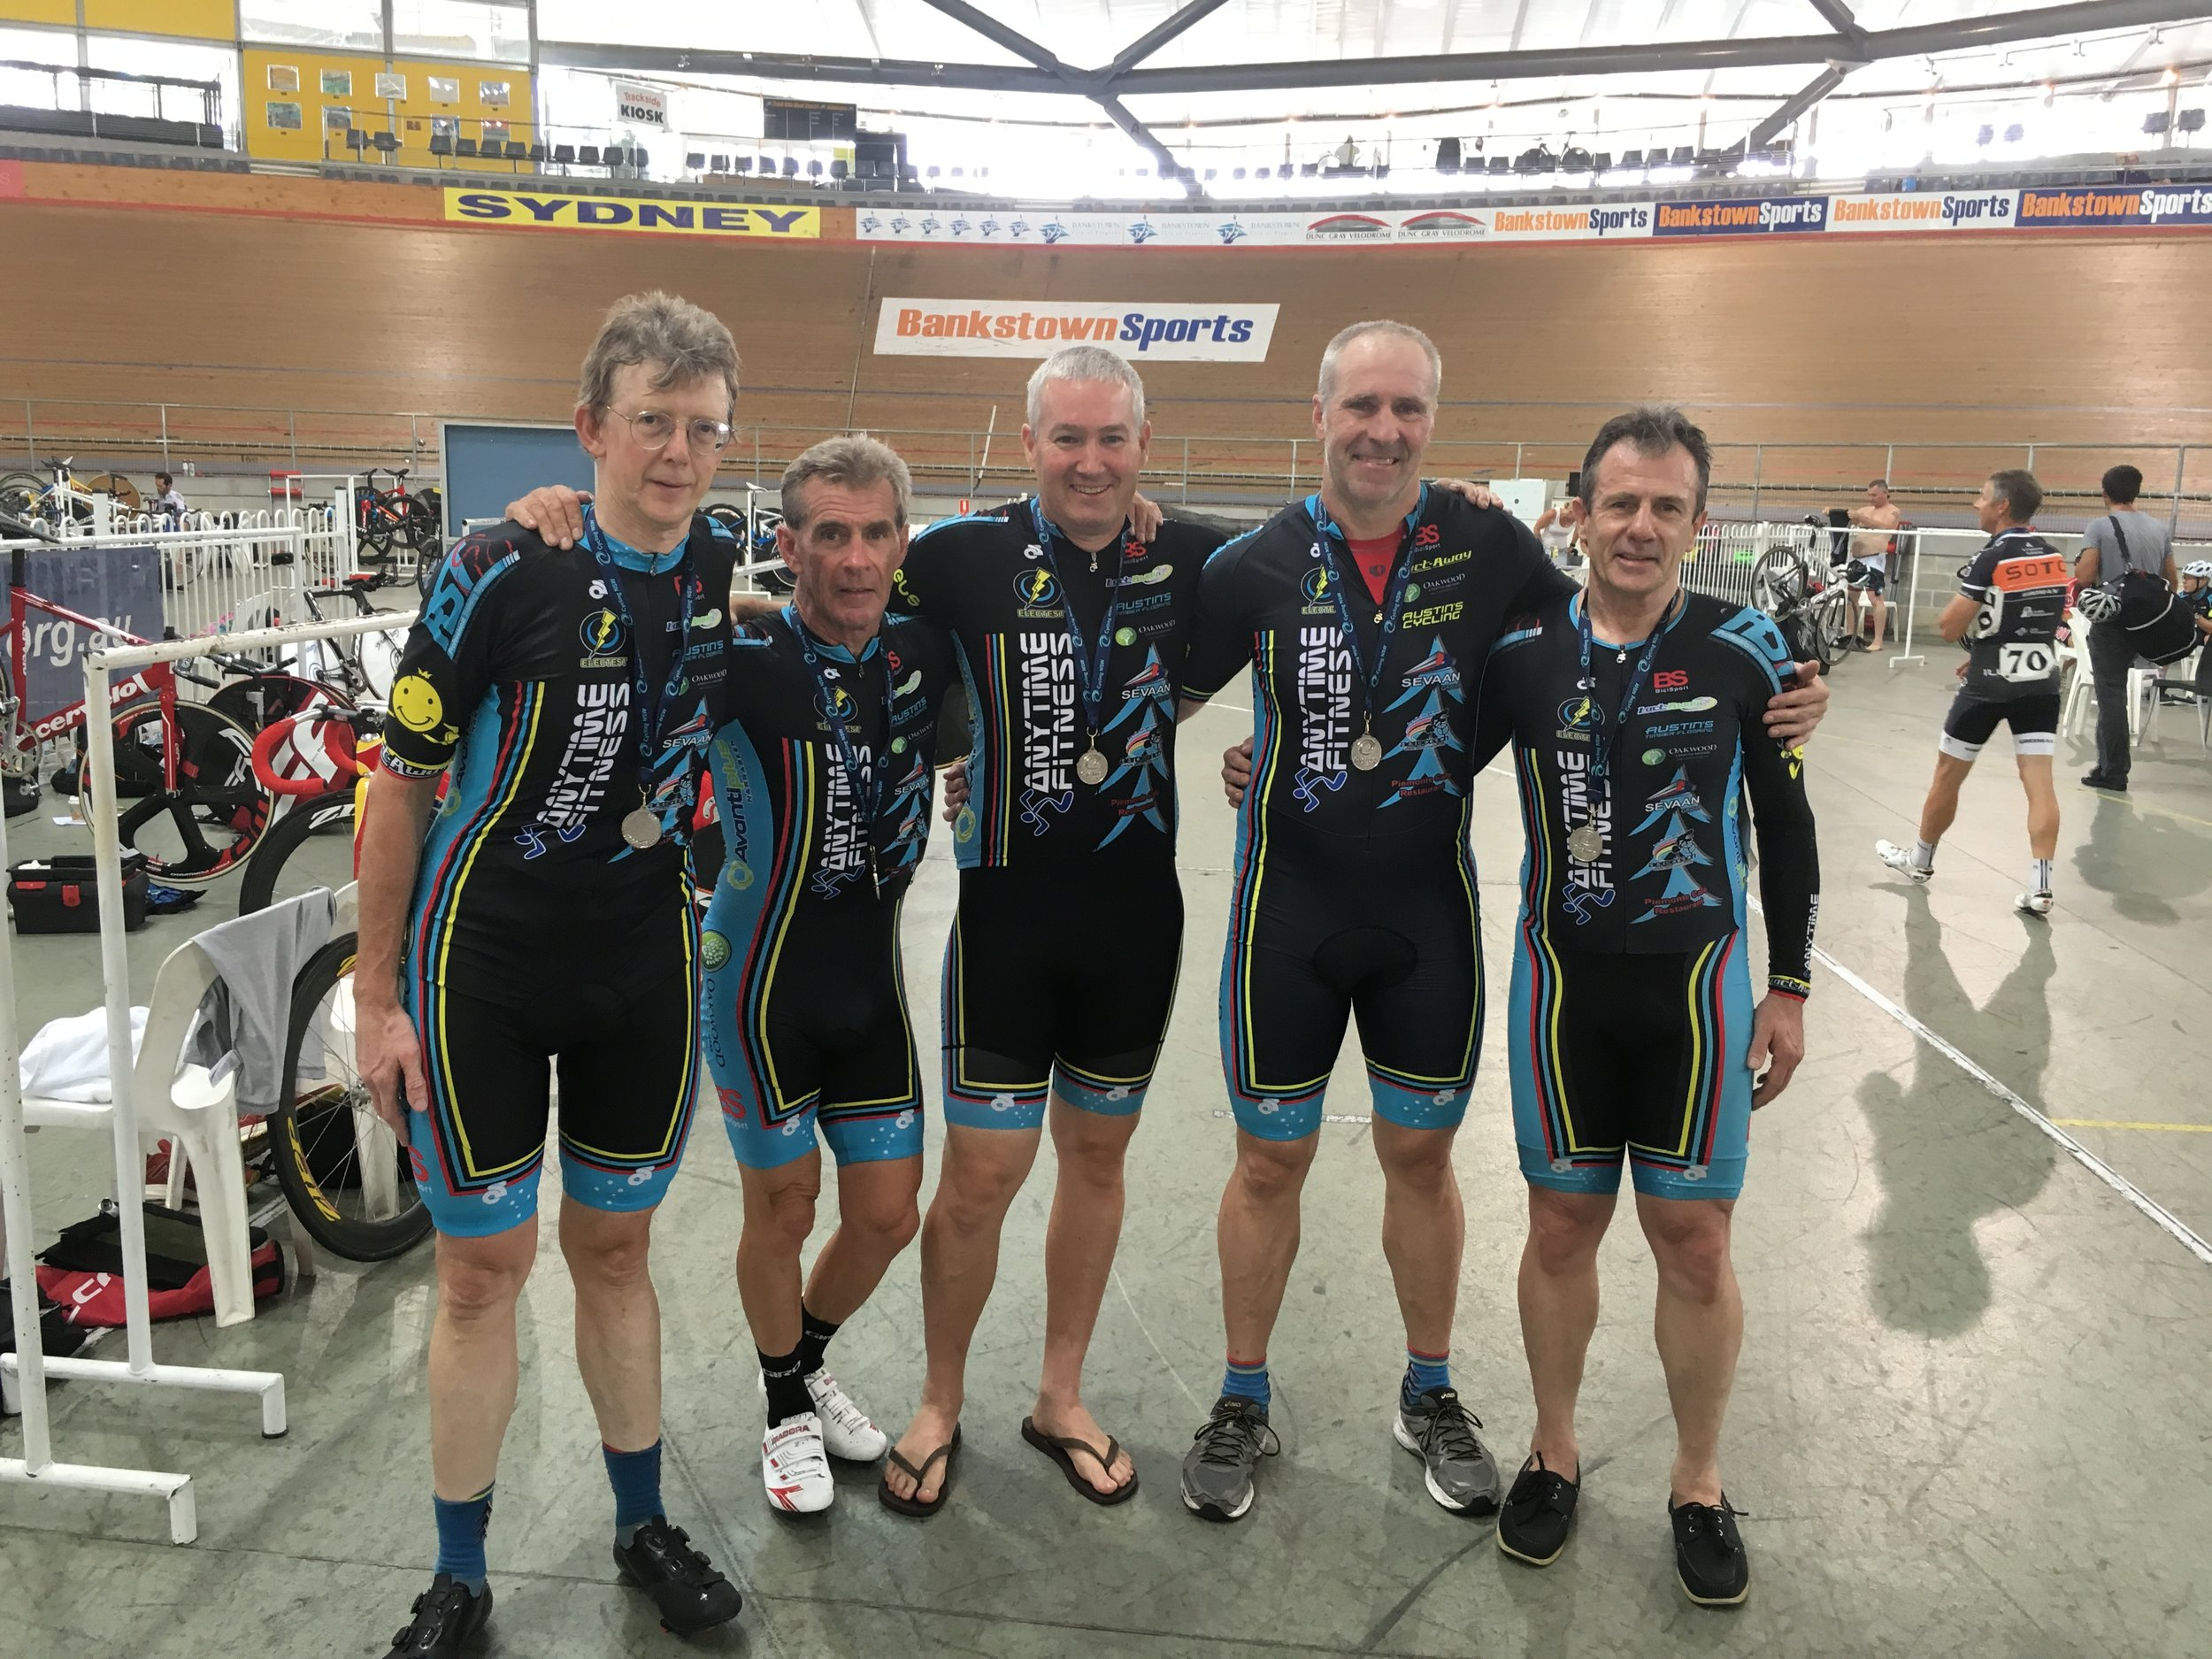 NSW Masters Track Championships February 2016 - The Masters 150+ team took the Silver medal with Peter Verhoeven, Mike Lawson, Michael O'Brien, James Thornton & David Willmott